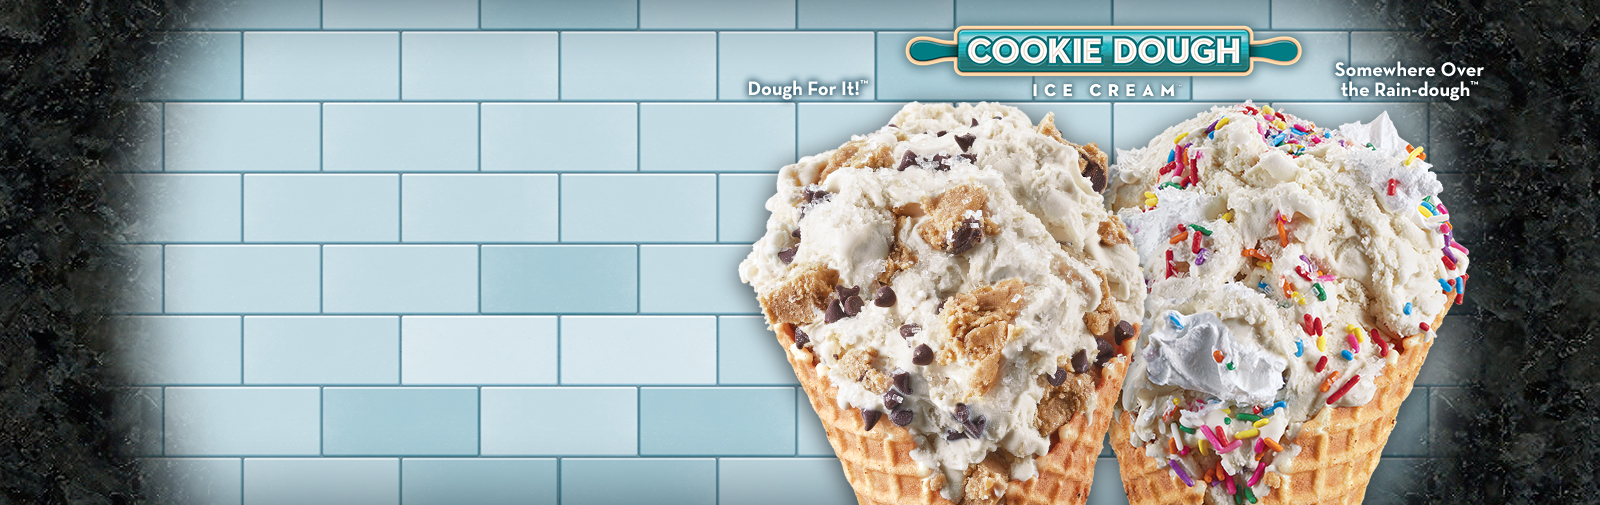 Try our new cookie dough Ice Cream.